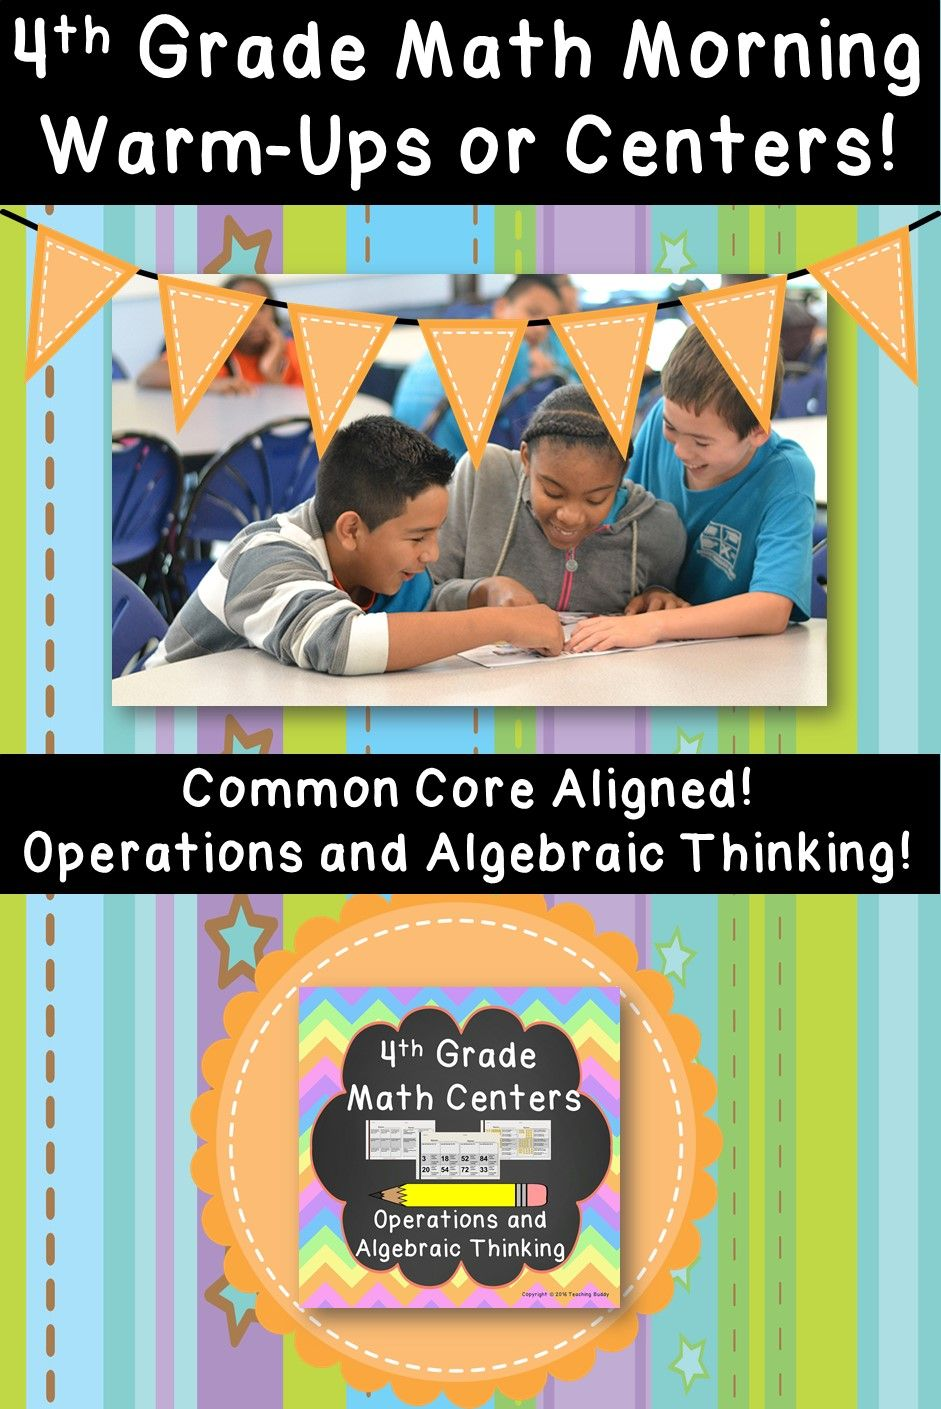 Super Versatile Half Worksheets That Can Be Used As Math Warm Ups Formative Assessments Math Centers And More Al Math Centers Love Math Algebraic Thinking [ 1409 x 941 Pixel ]